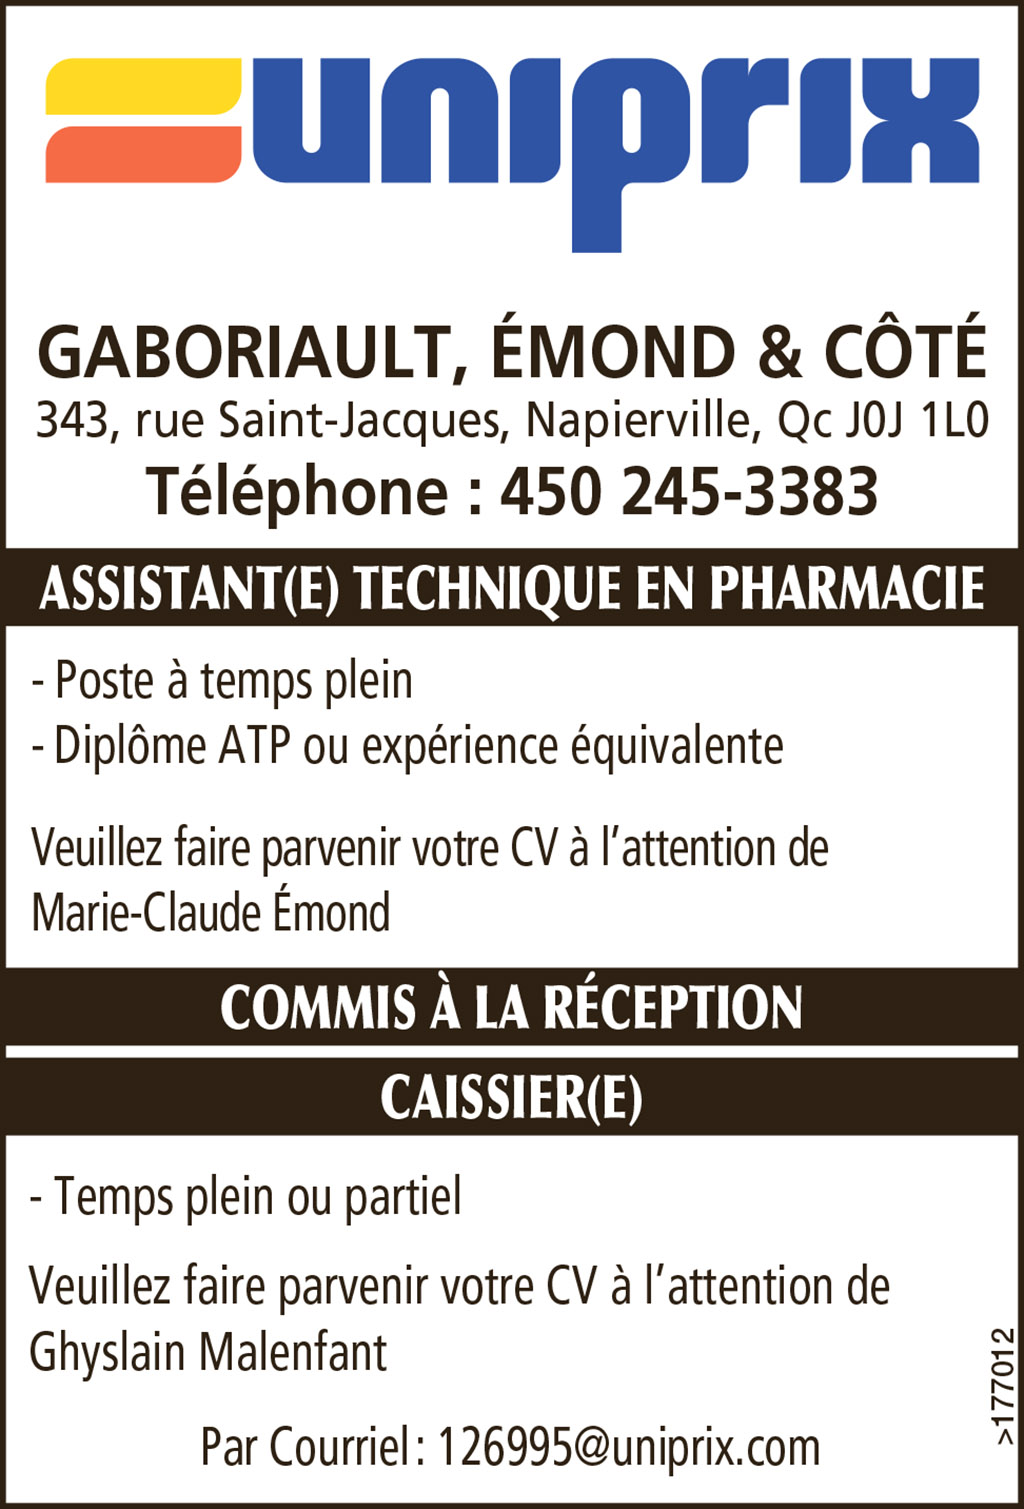 ASSISTANT(E) TECHNIQUE EN PHARMACIE